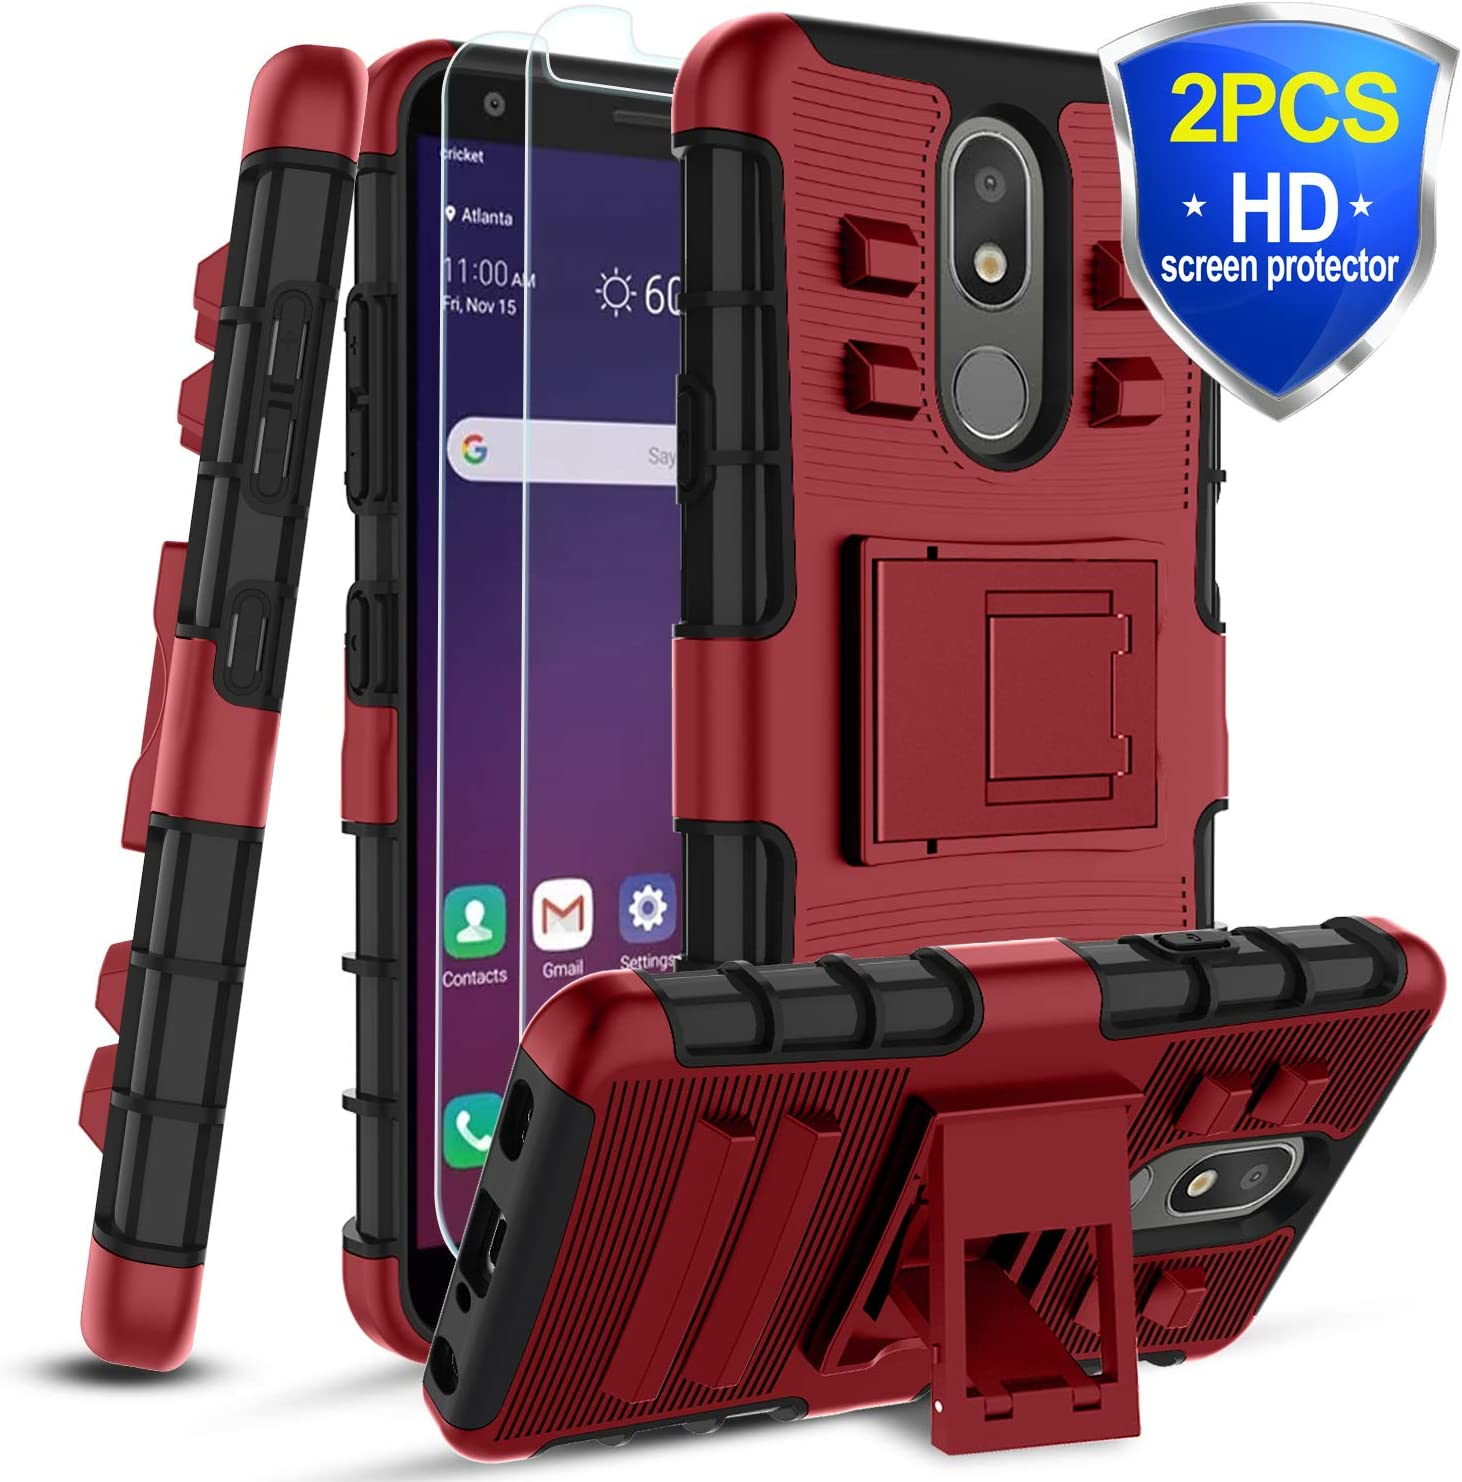 Alleta LG Aristo 4+Case,LG Aristo 4 Plus/K30 2019/Journey LTE/Escape Plus/Arena 2/Tribute Royal/Prime 2 Case w/2 PCS Sreen Protector&Kickstand,[Skockproof] Dual Layer Protective Phone Cover,PC-Red